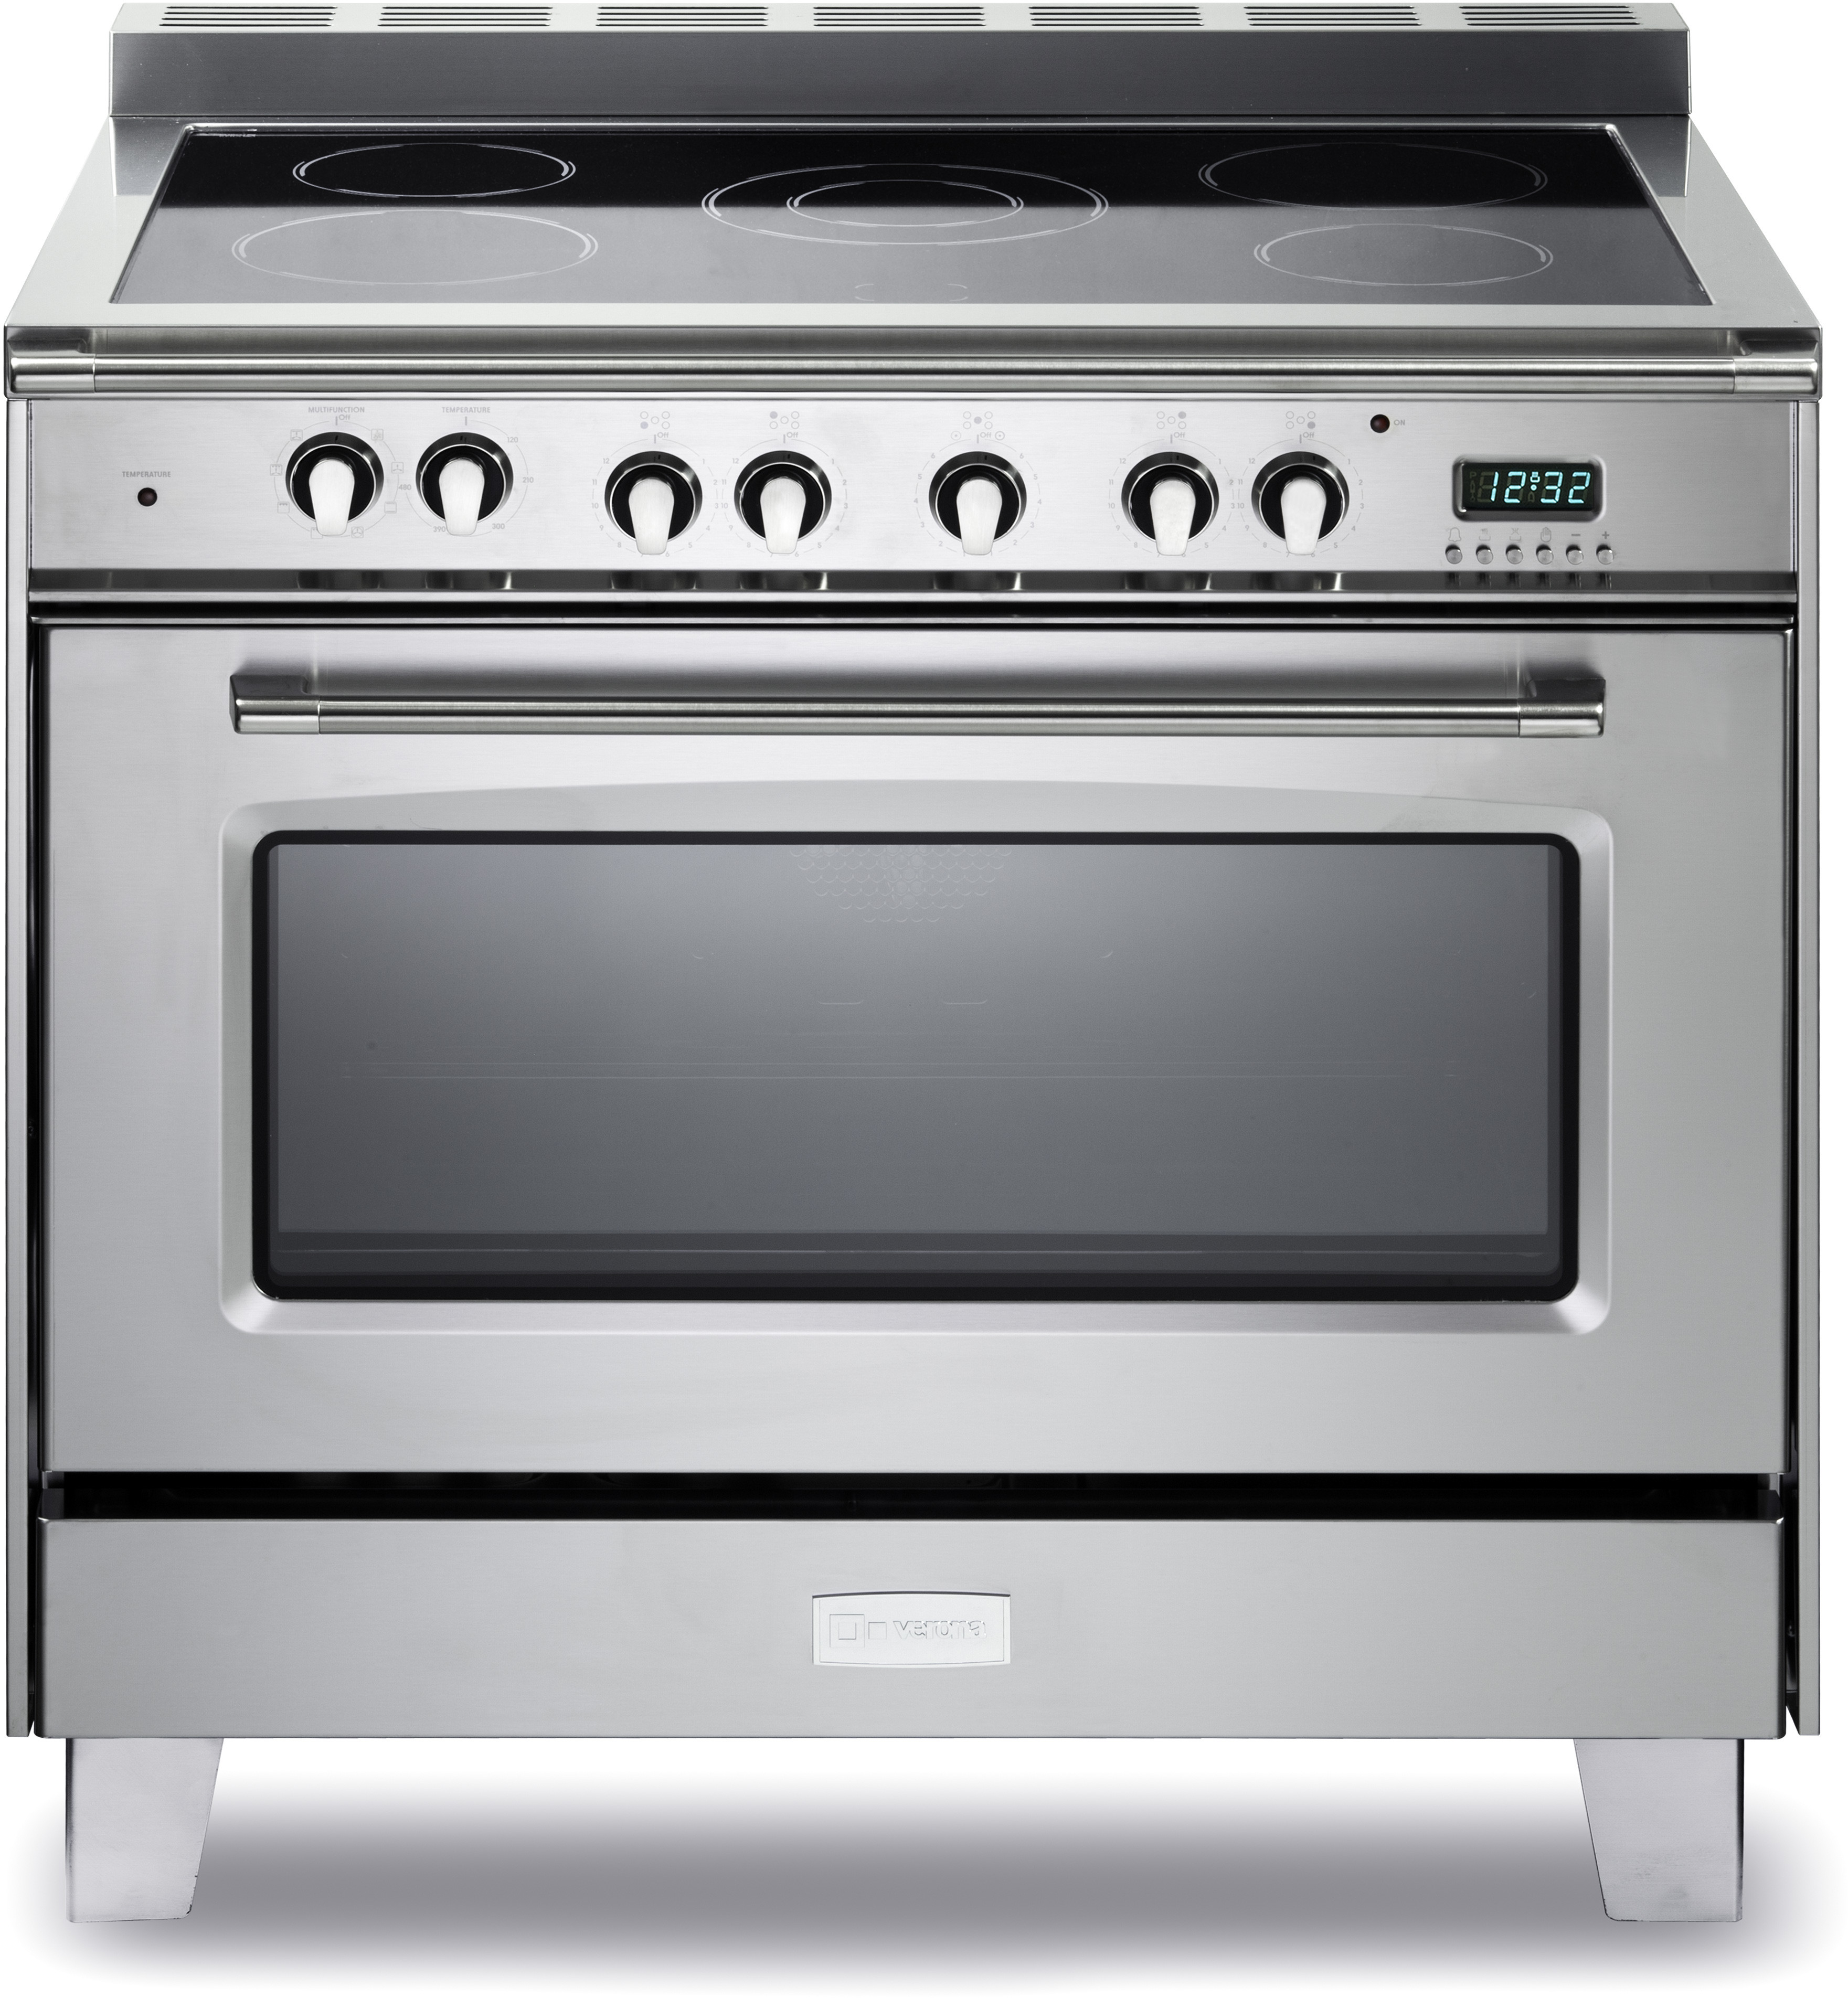 36 Electric Range >> Verona Vclfsee365ss 36 Inch Freestanding Electric Range